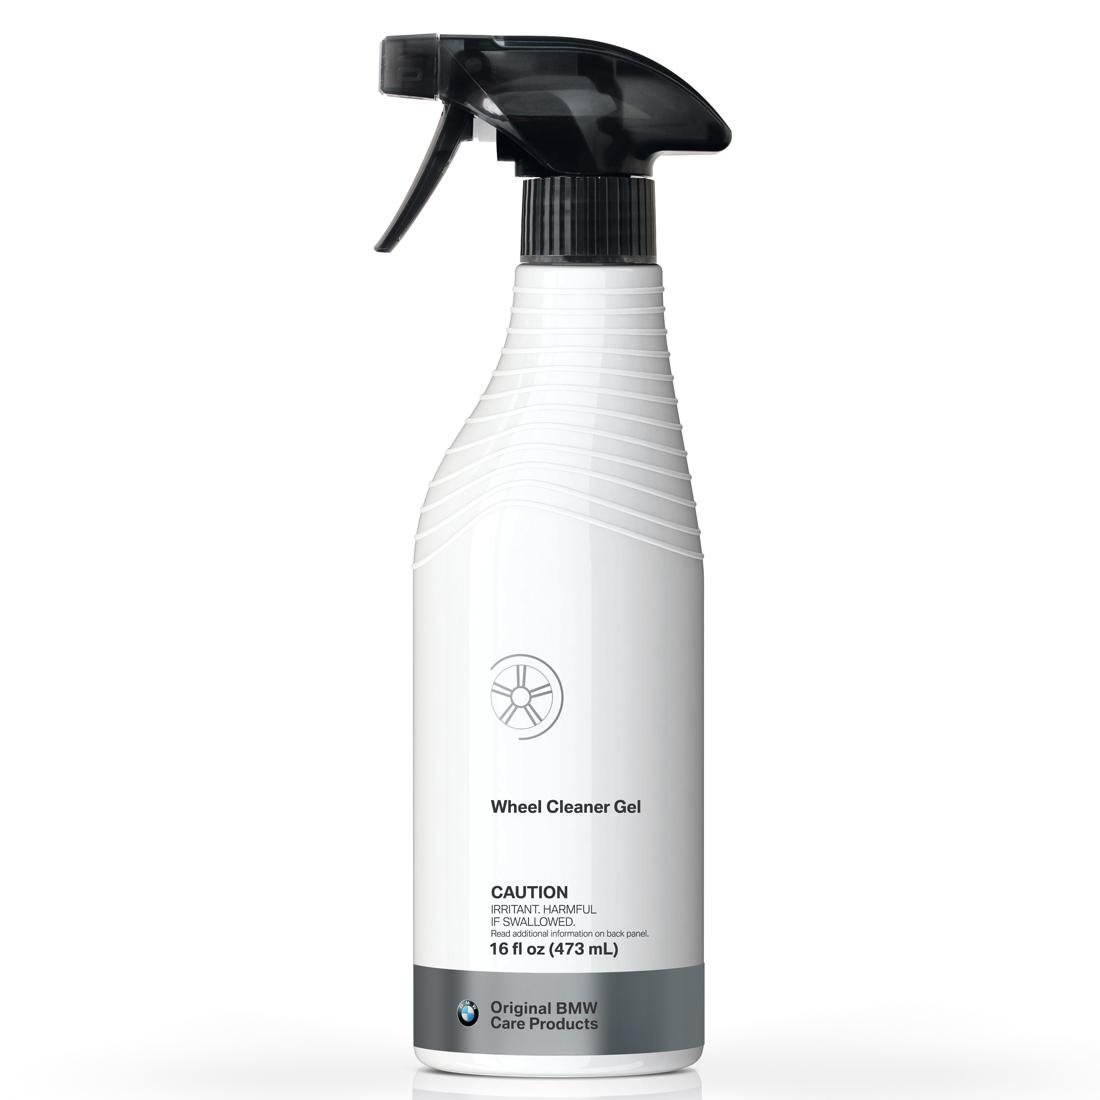 BMW Wheel Cleaner Gel